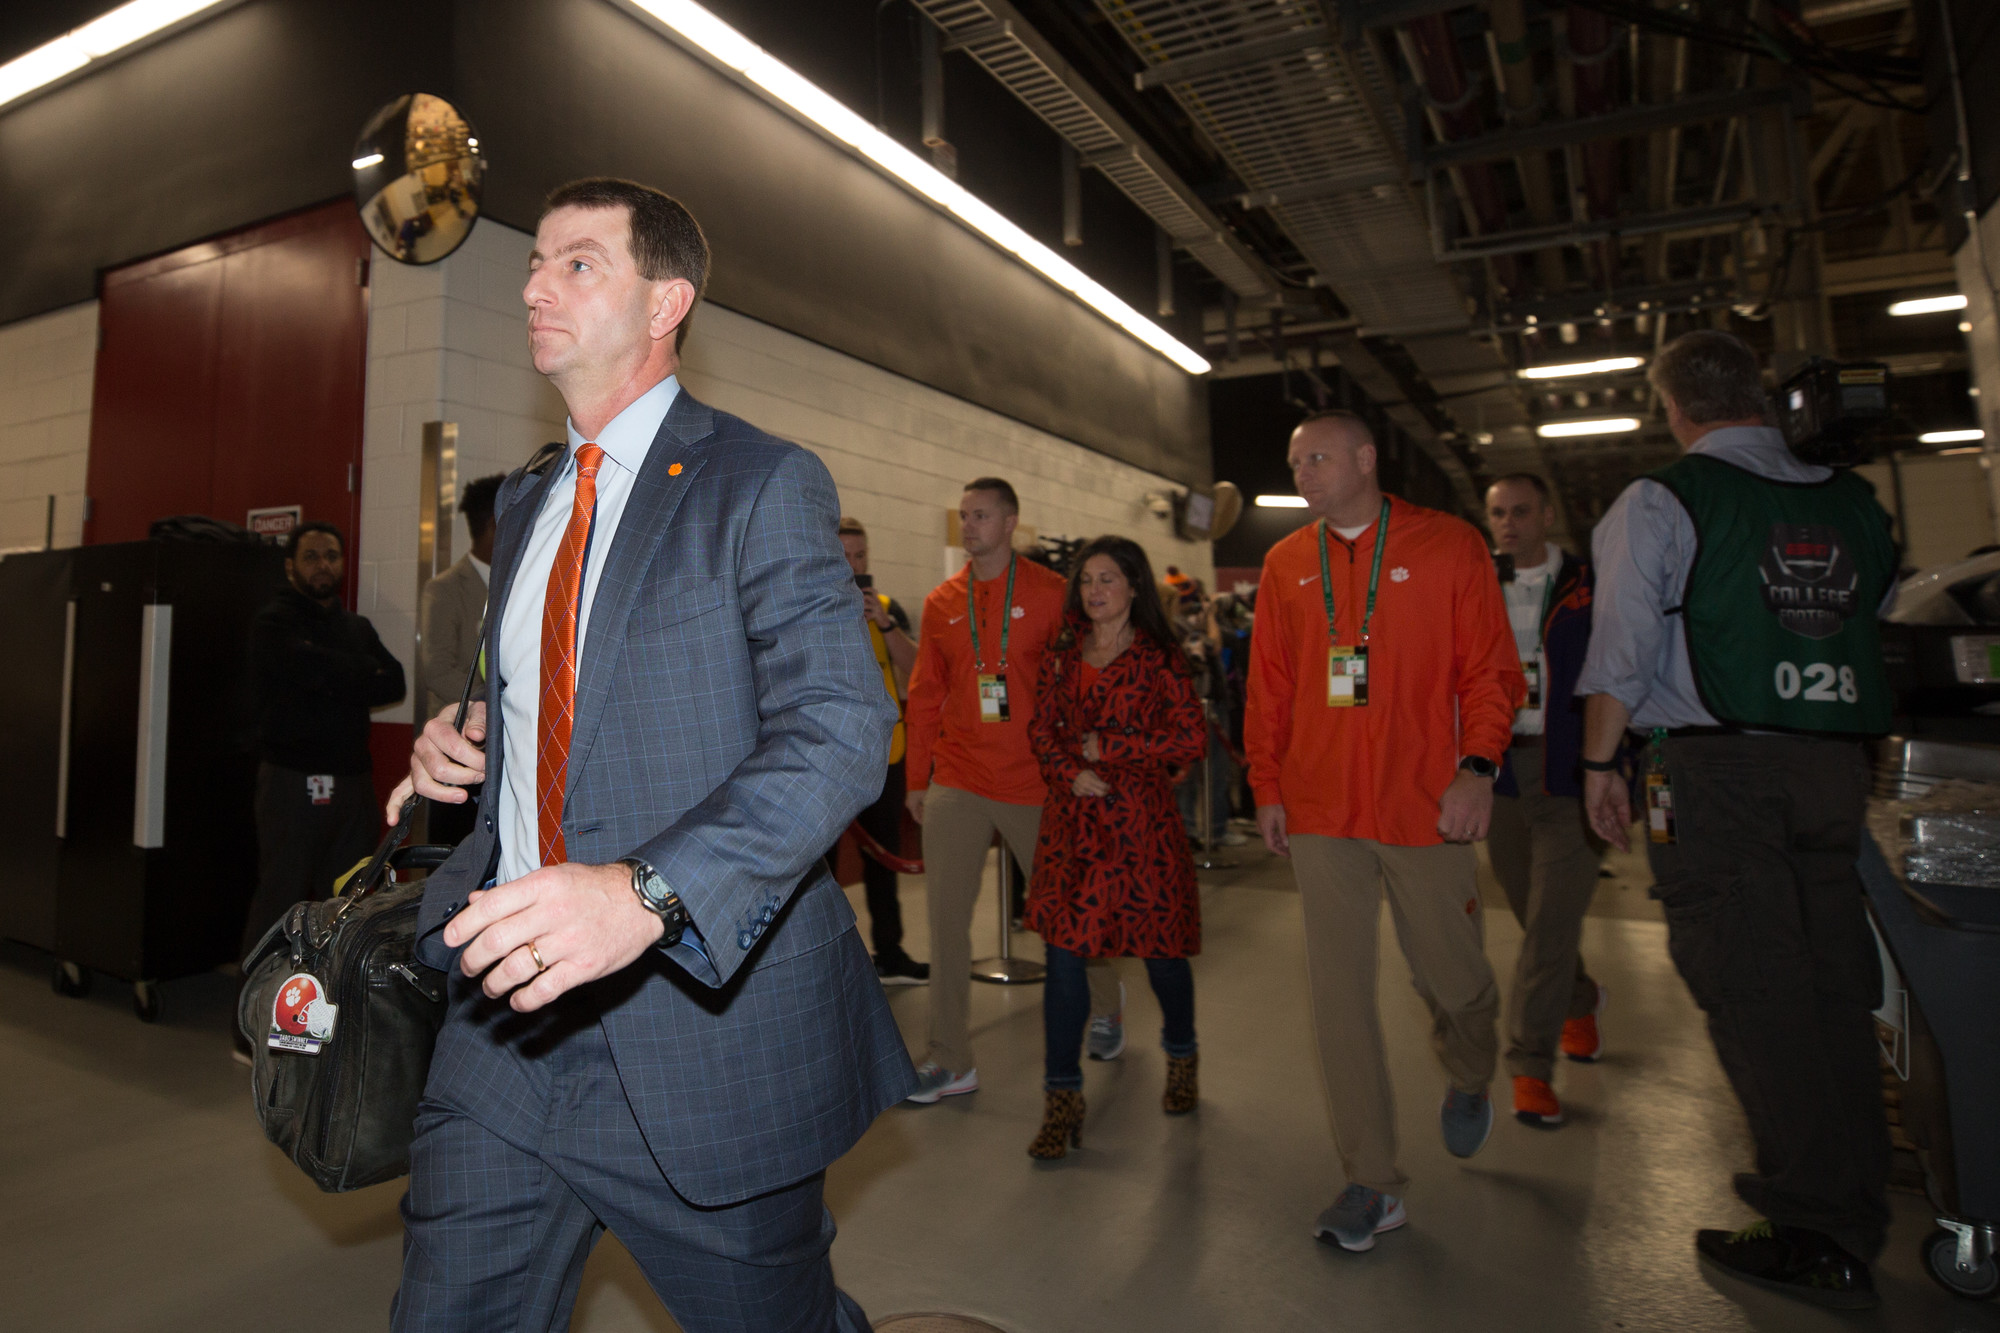 Clemson head coach Dabo Swinney enters Levi's Stadium in Santa Clara, California, on Monday, Jan. 7 before the CFP National Championship game against Alabama.